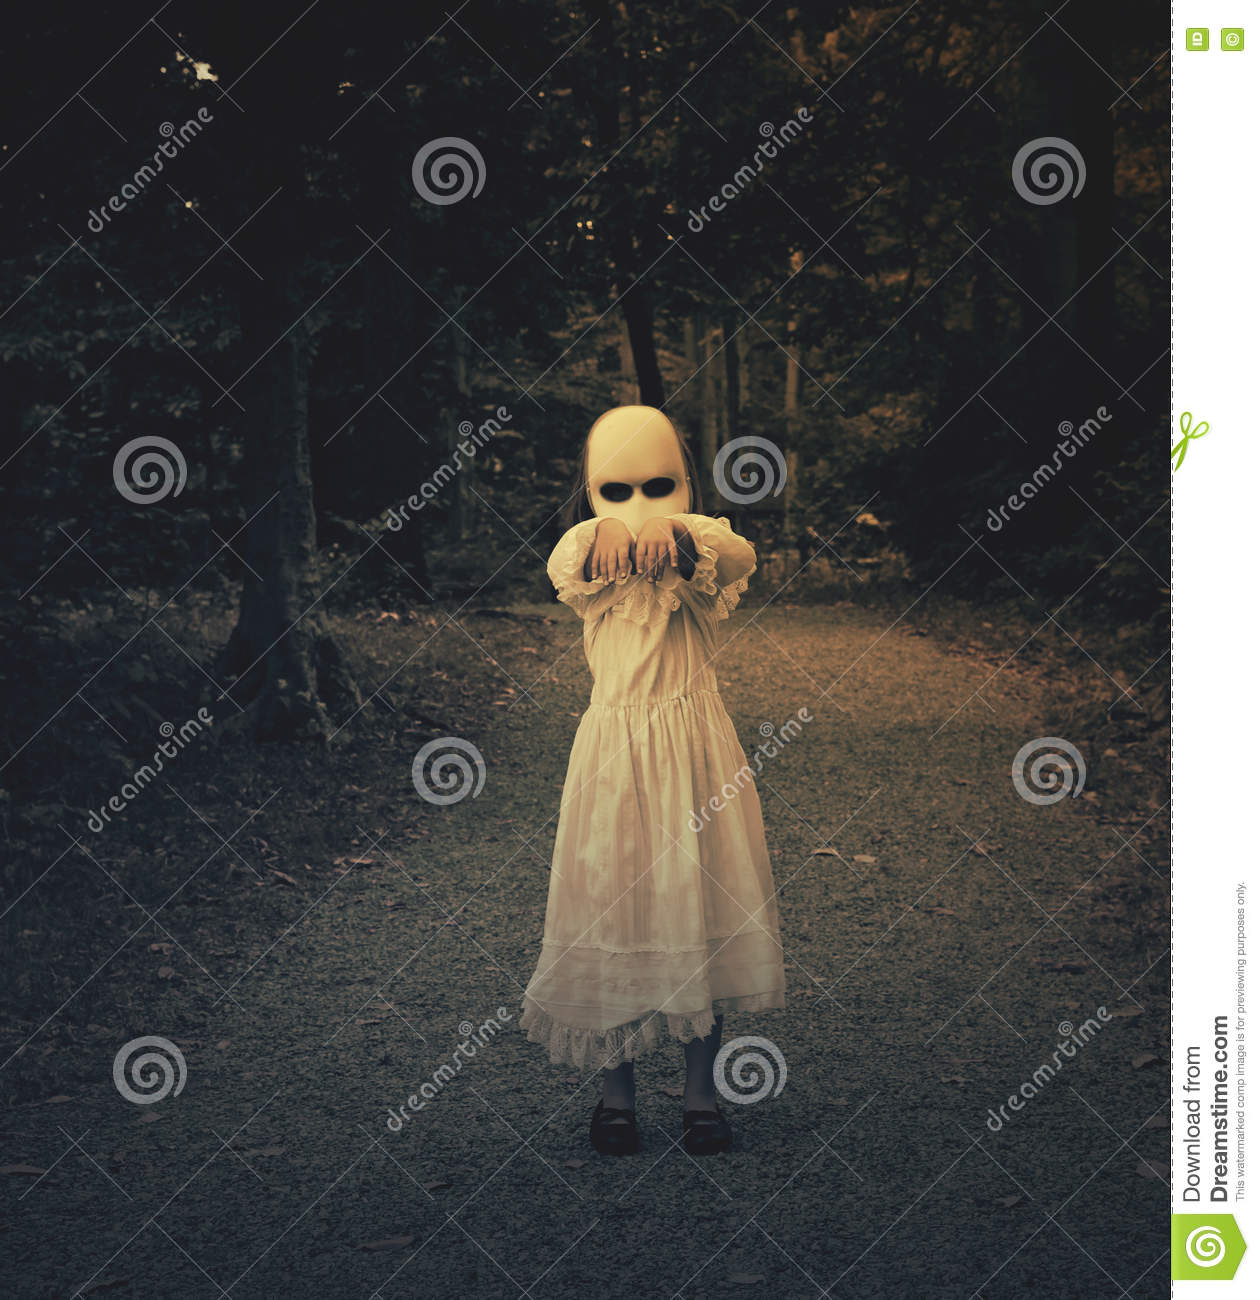 Scary Haunted Ghost Girl in Woods